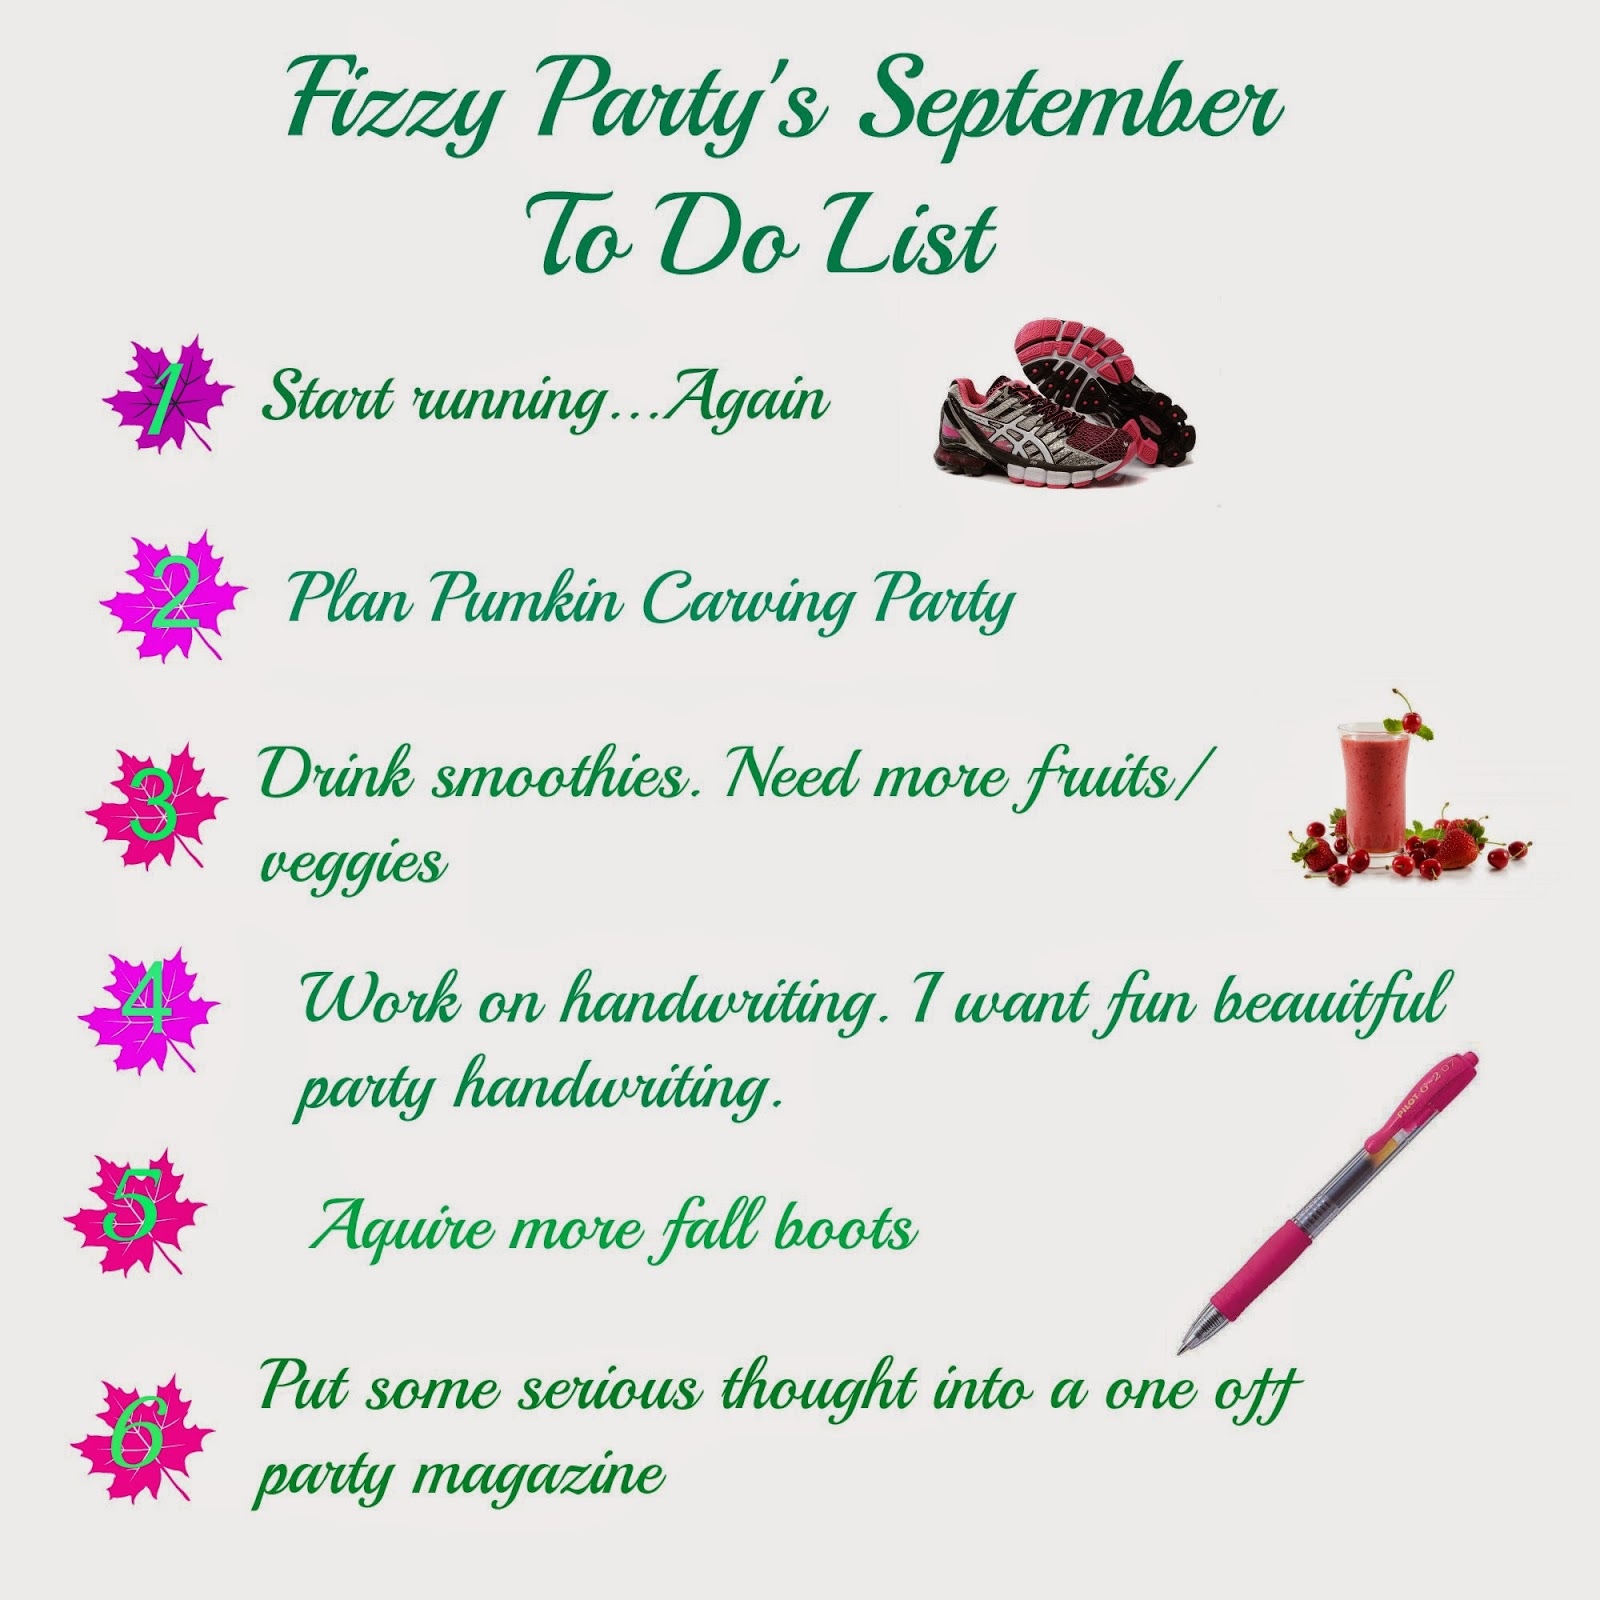 fizzy party september to do list